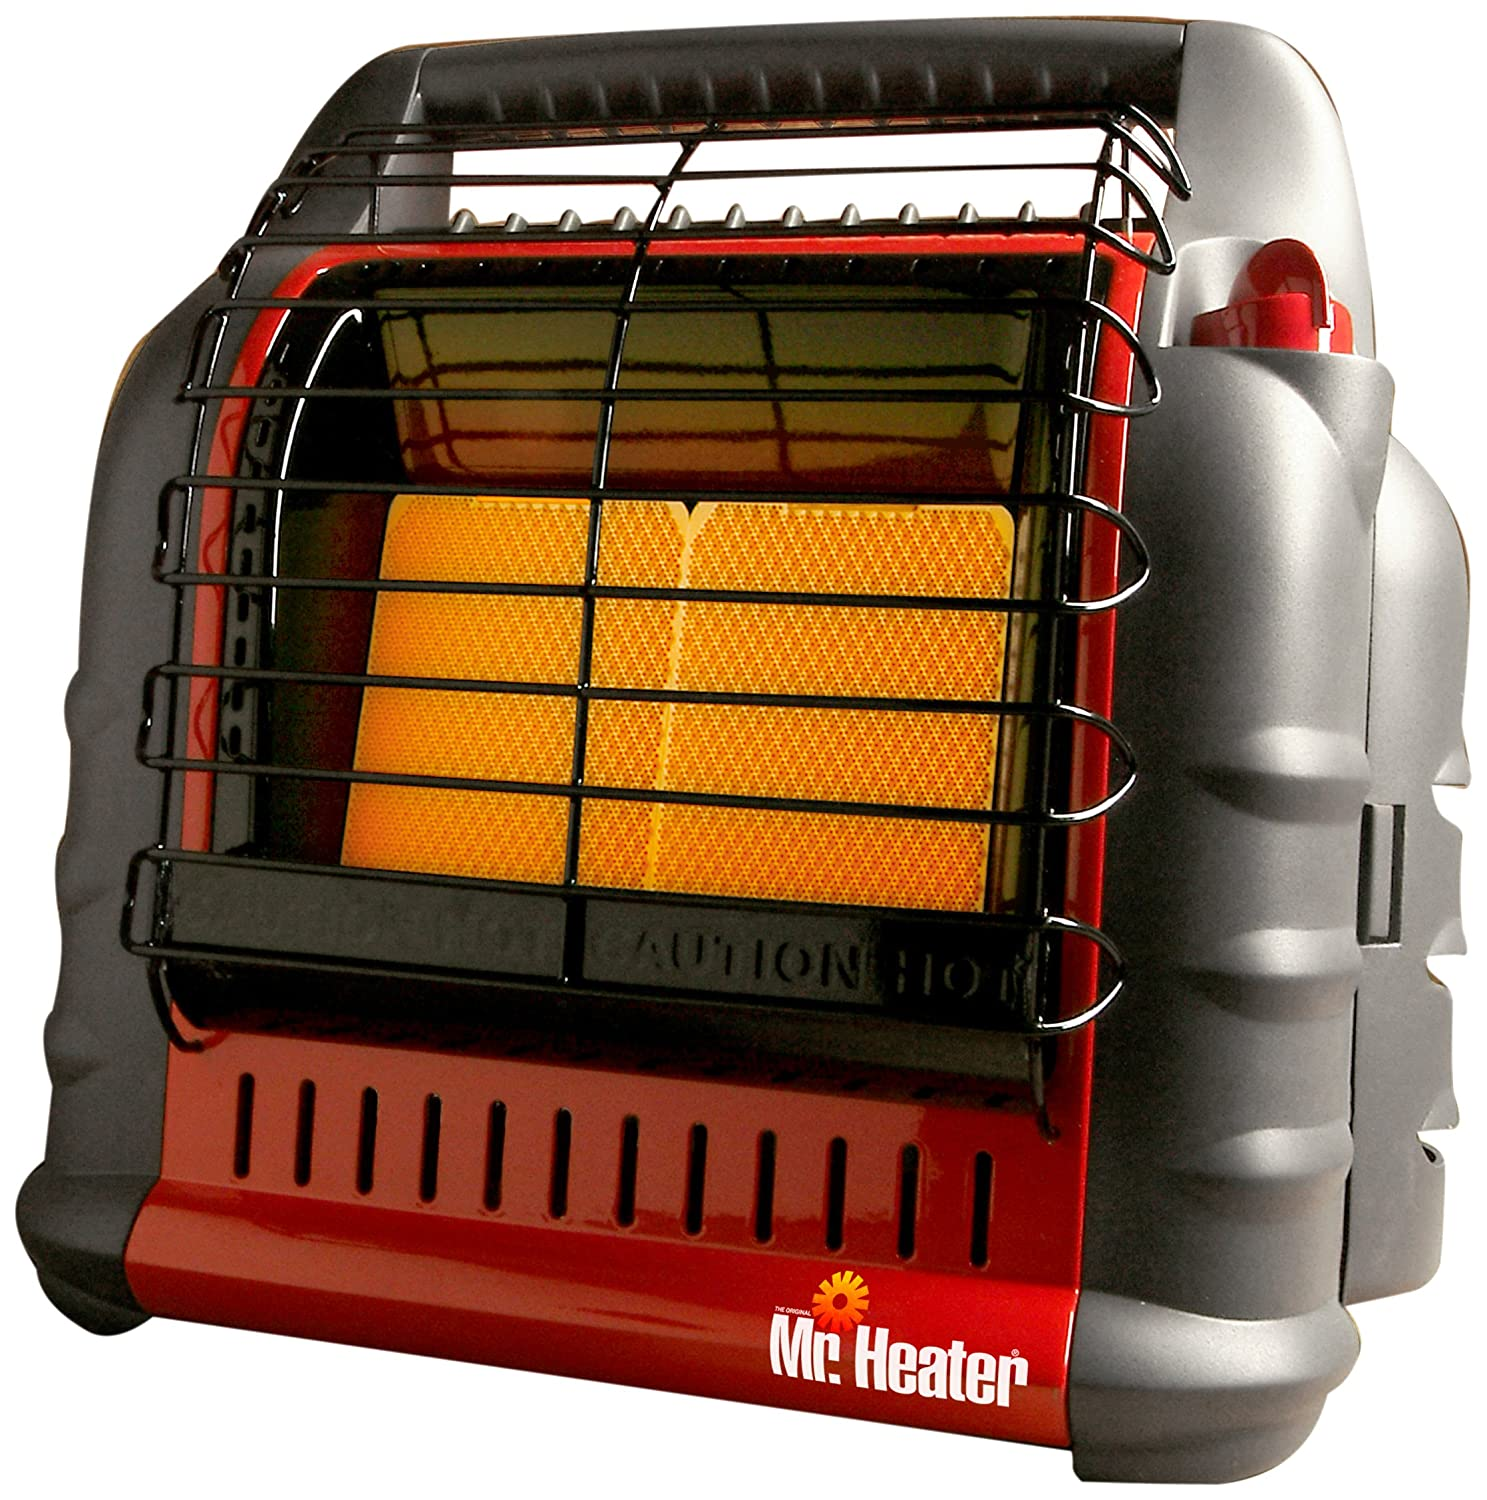 Mr. Heater F274865 MH18B Big Buddy Portable Heater Massachusetts And Canada Version 4, 000-18, 000 BTU Mr. Heater Corporation